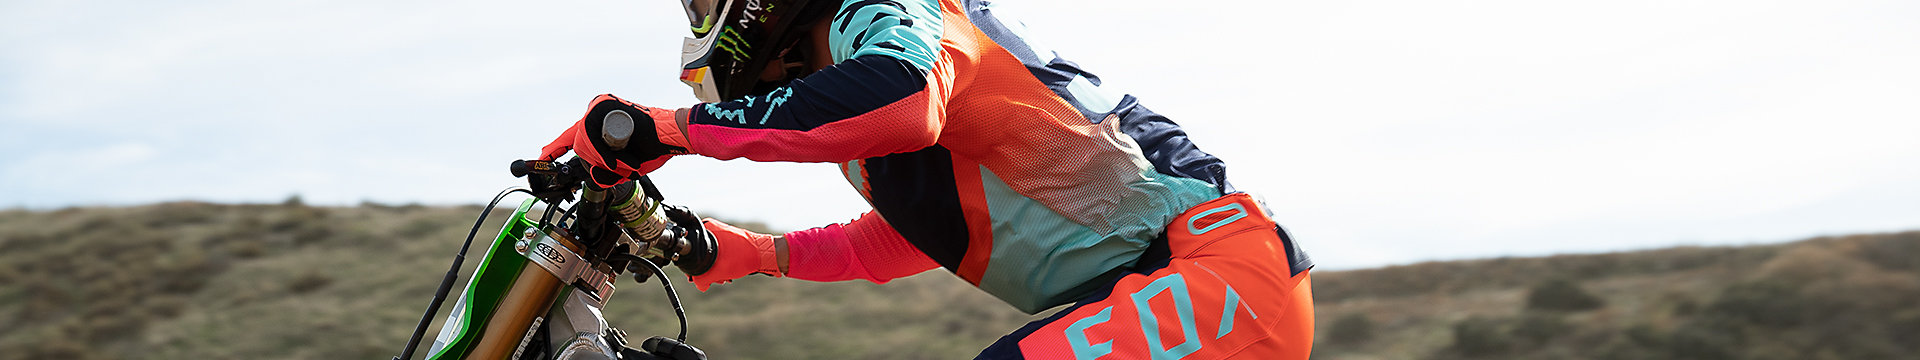 Fox Motocross Jerseys